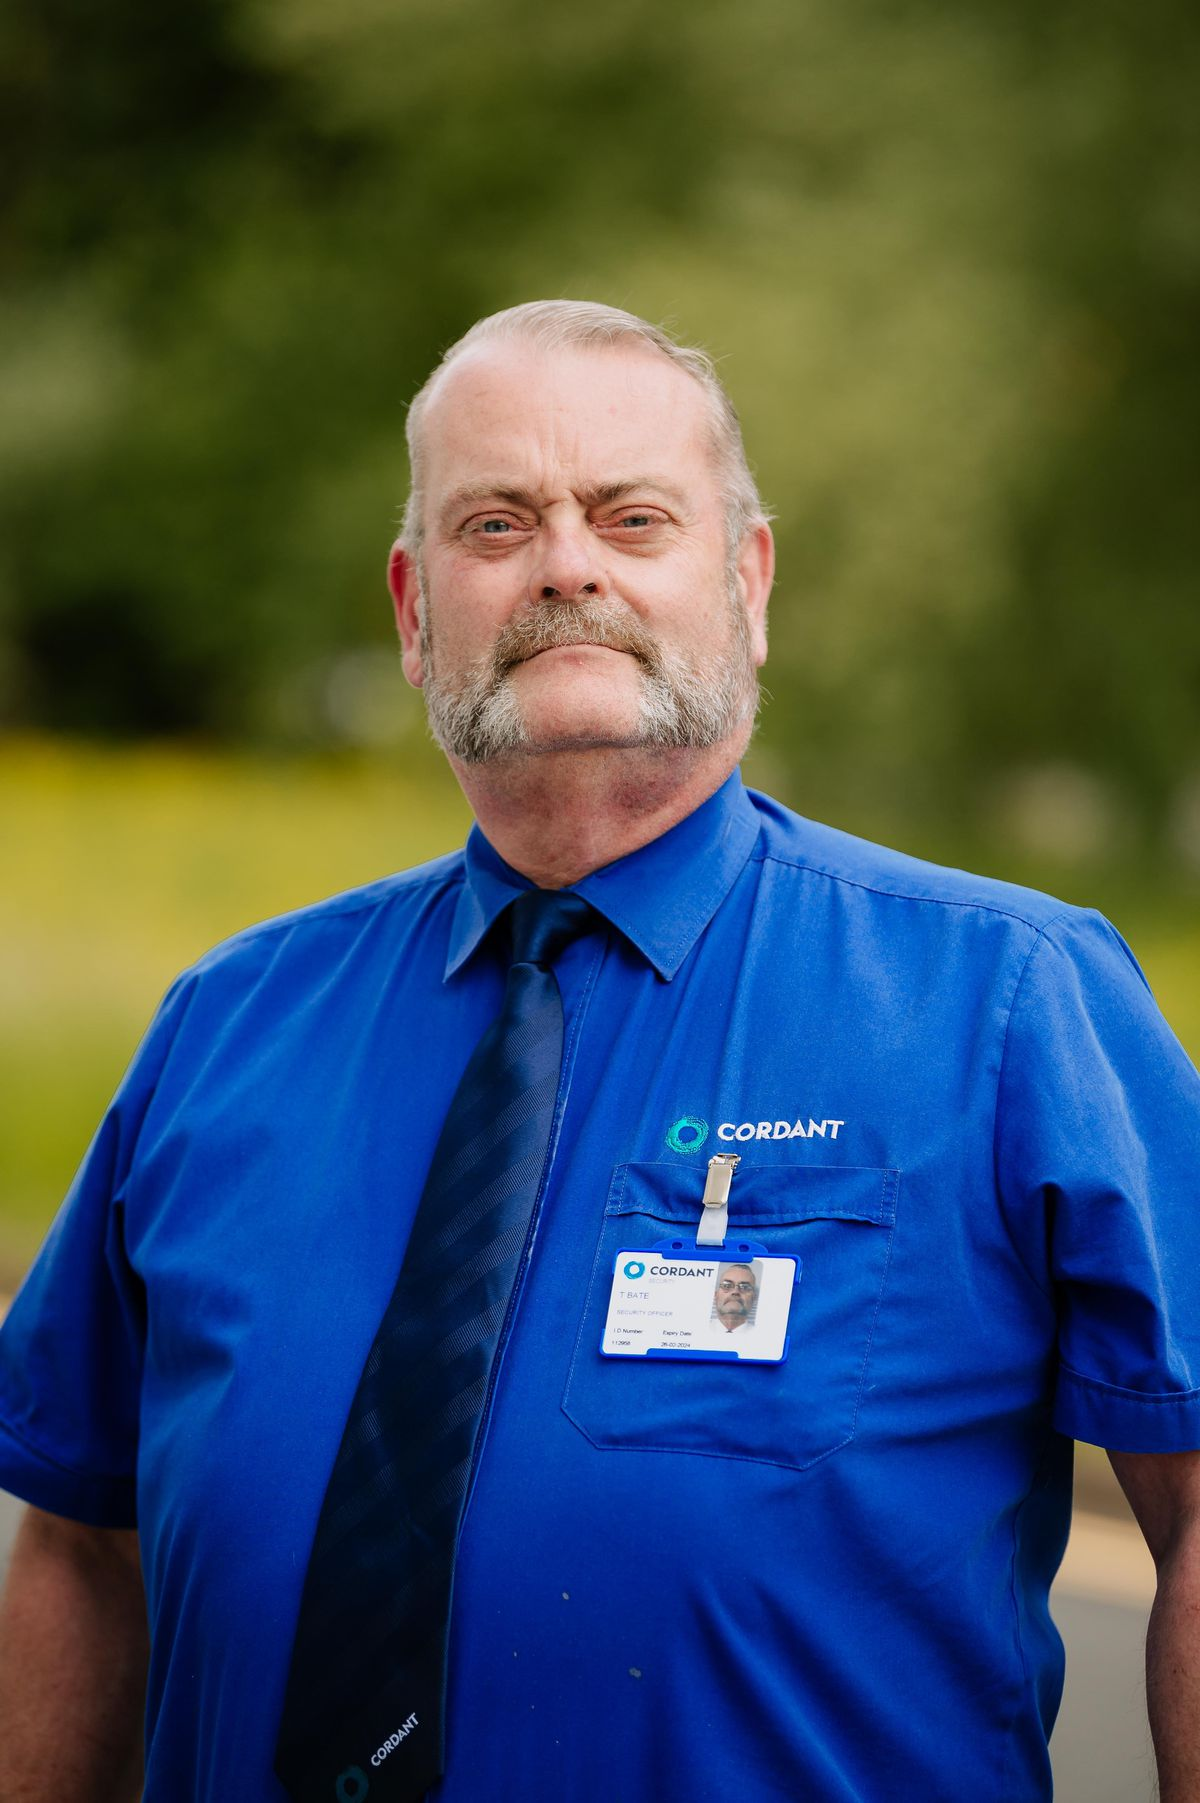 Trevor Bate from Telford will receive the BEM for his services delivering prescriptions to the community during Covid.